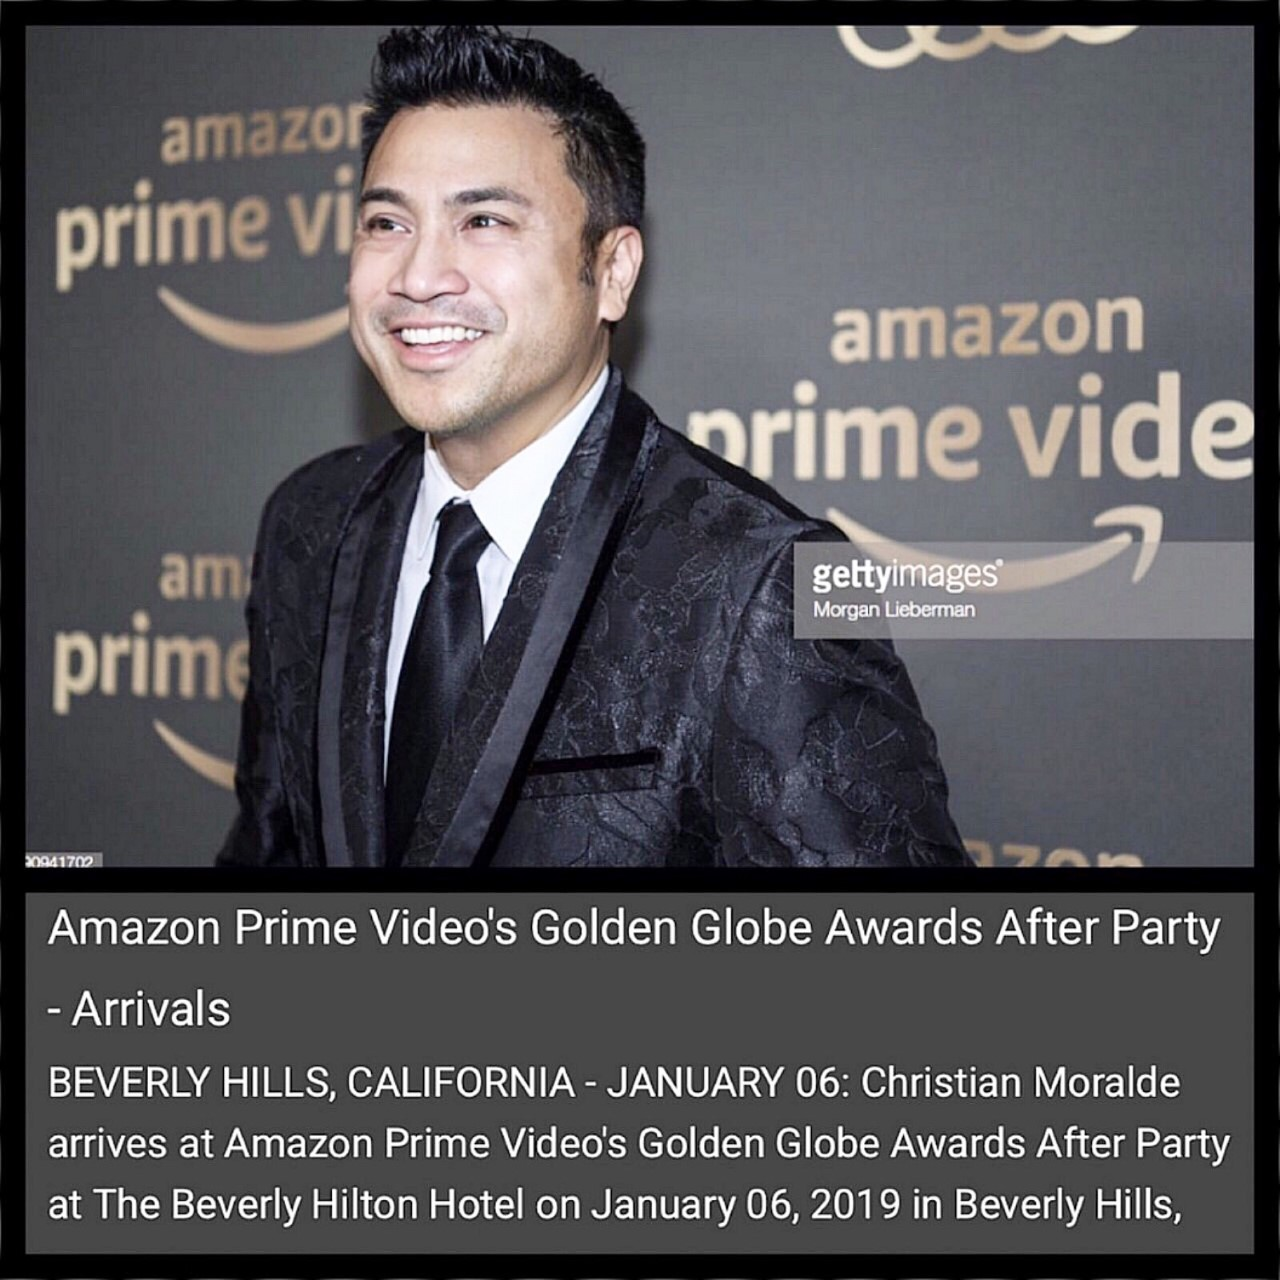 Amazon Prime Video After-Party